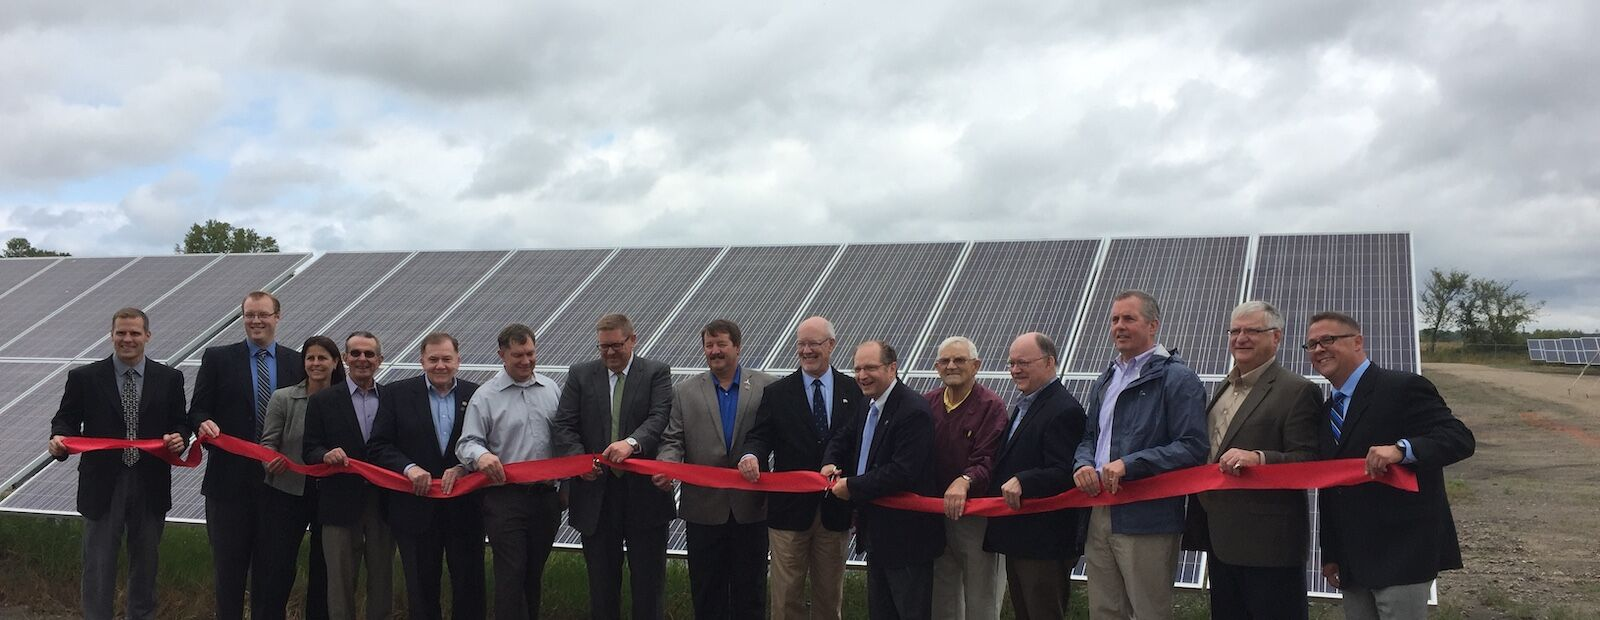 Dickinson Solar Project Ribbon Cutting